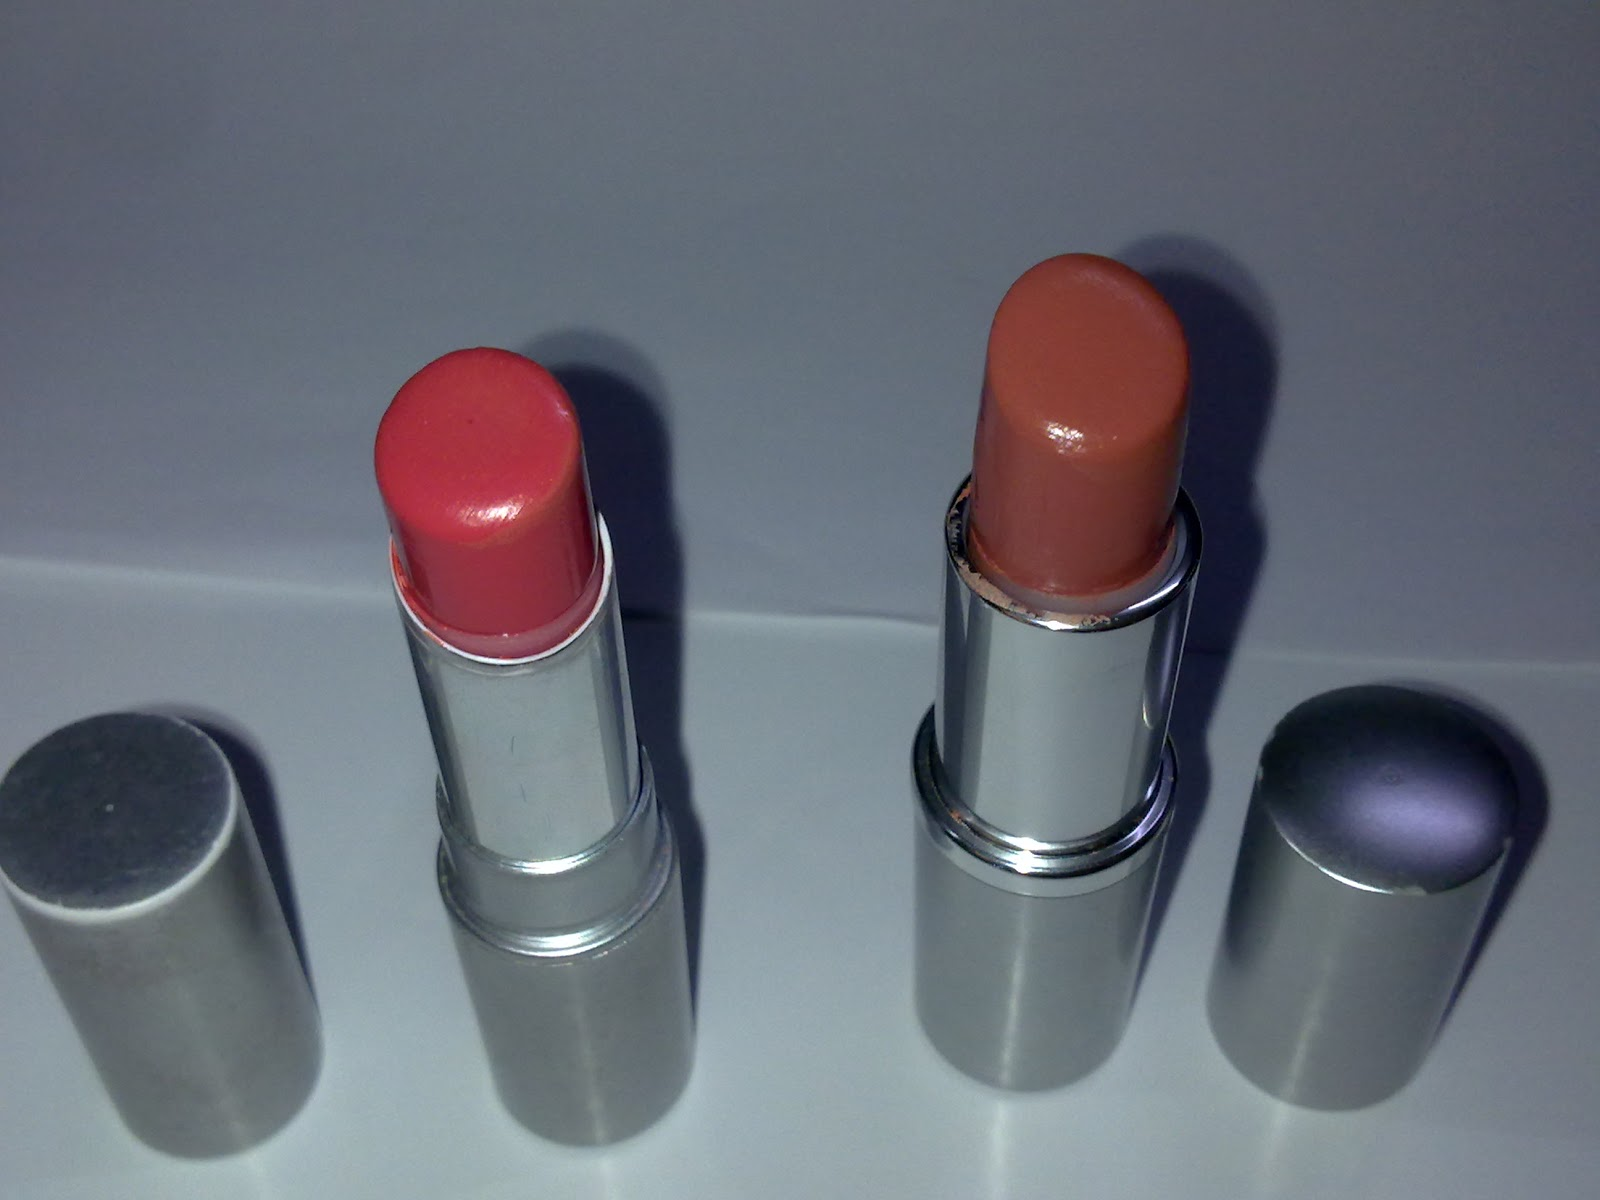 Hear Me Allah Lipstick Review